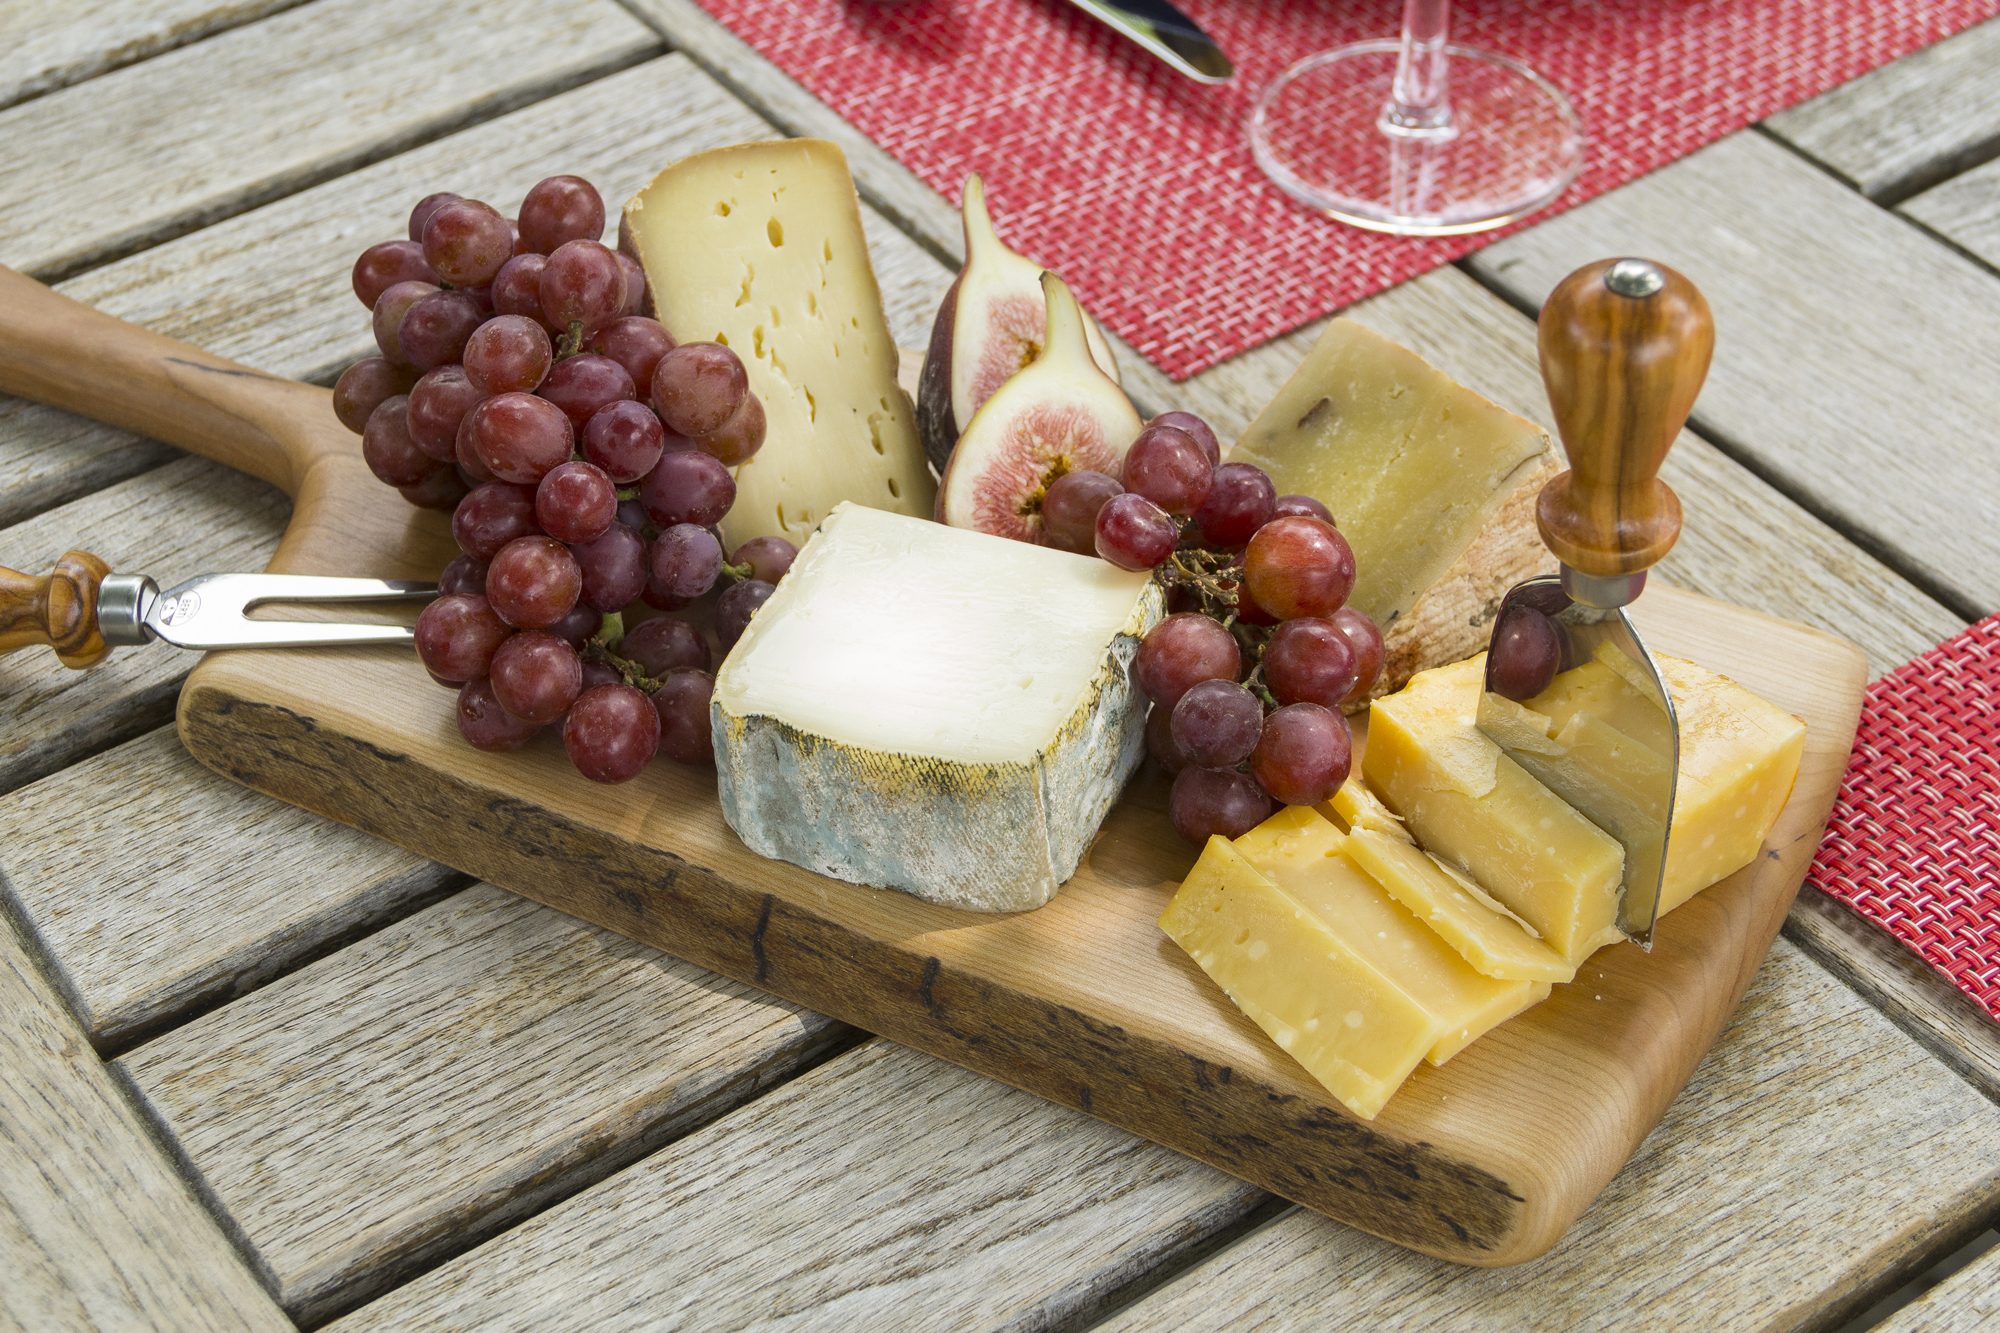 Spencer Peterman Board with Berti Cheese Knives